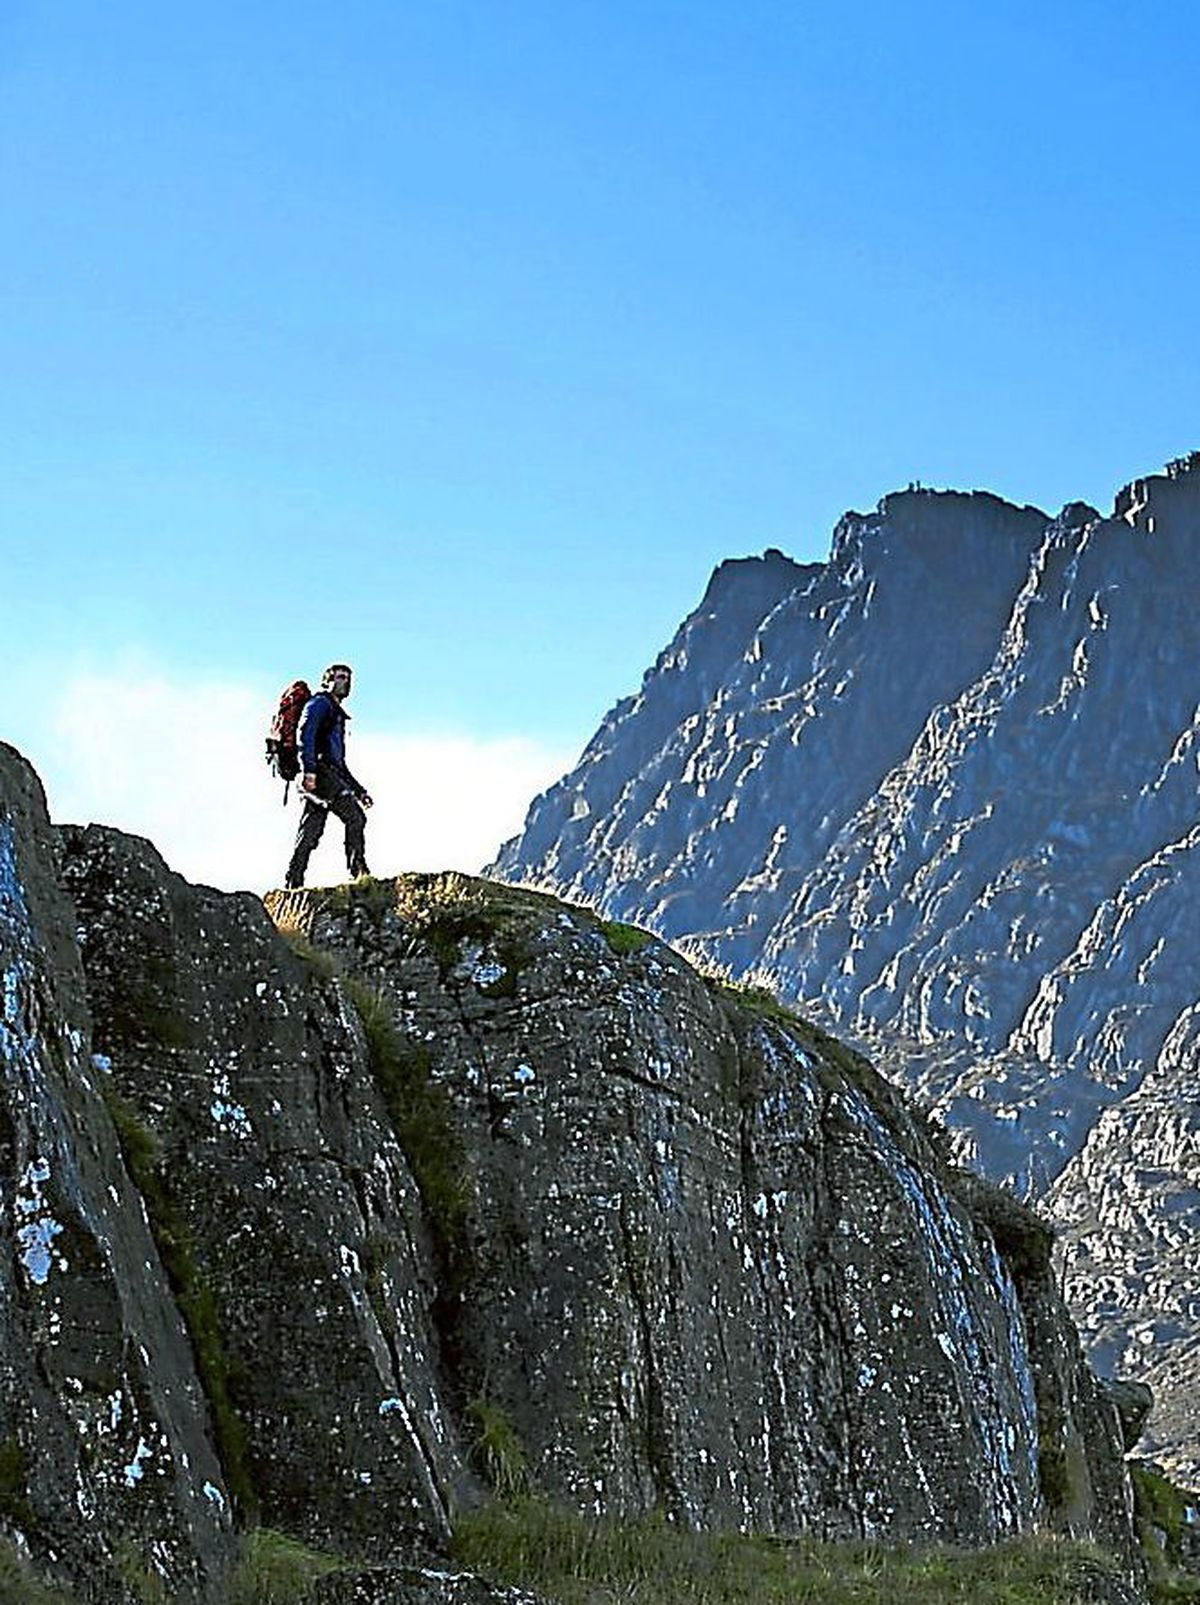 Tryfan in Snowdonia which topped a survey by hillwalking magazine Trail, with Helvellyn in the Lake District coming second and Wales' highest mountain Snowdon securing third place.